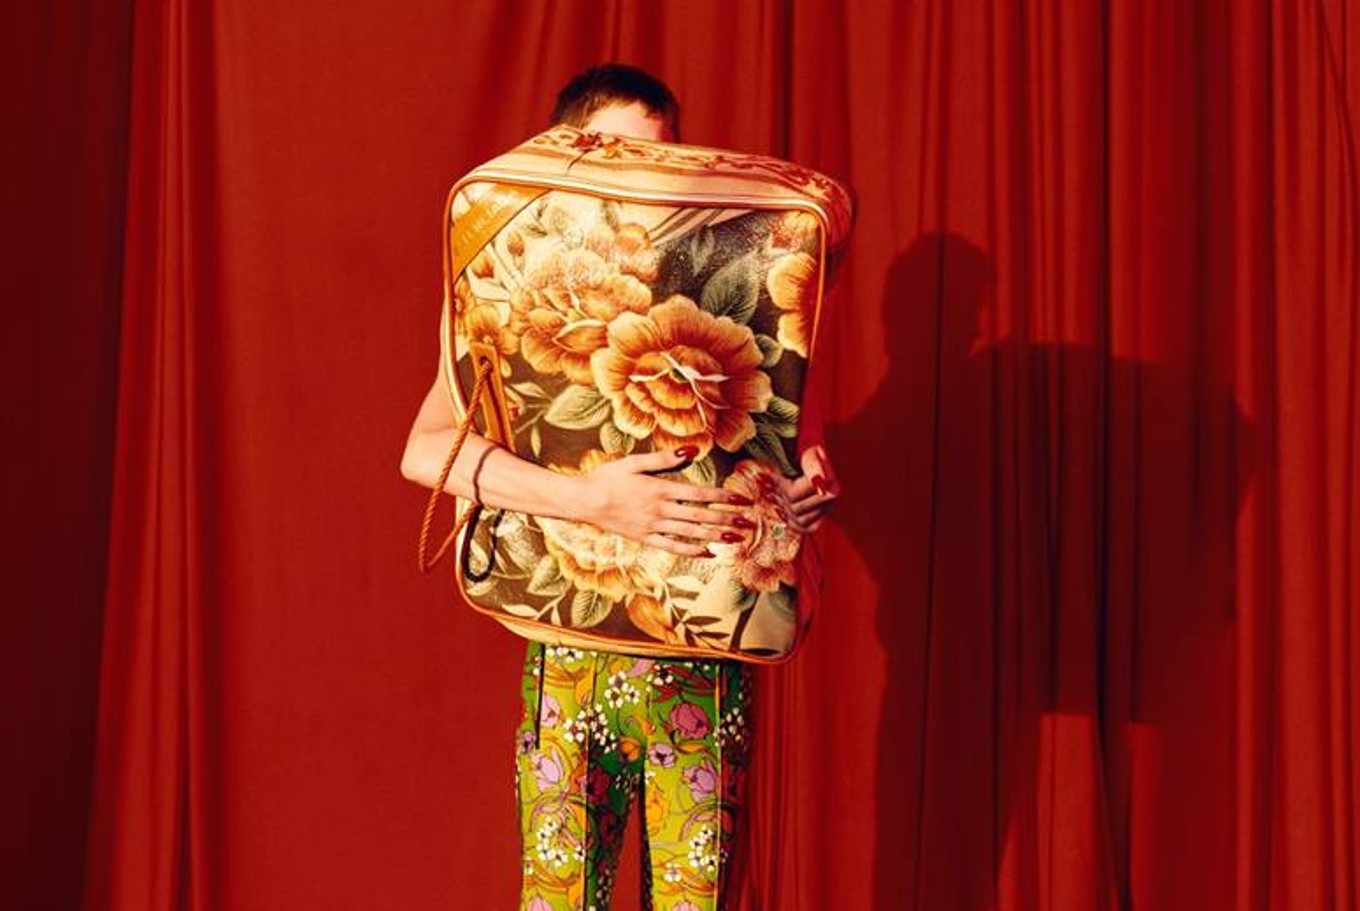 Netizens ridicule Balenciaga's $4,900 tote that looks like a blanket bag